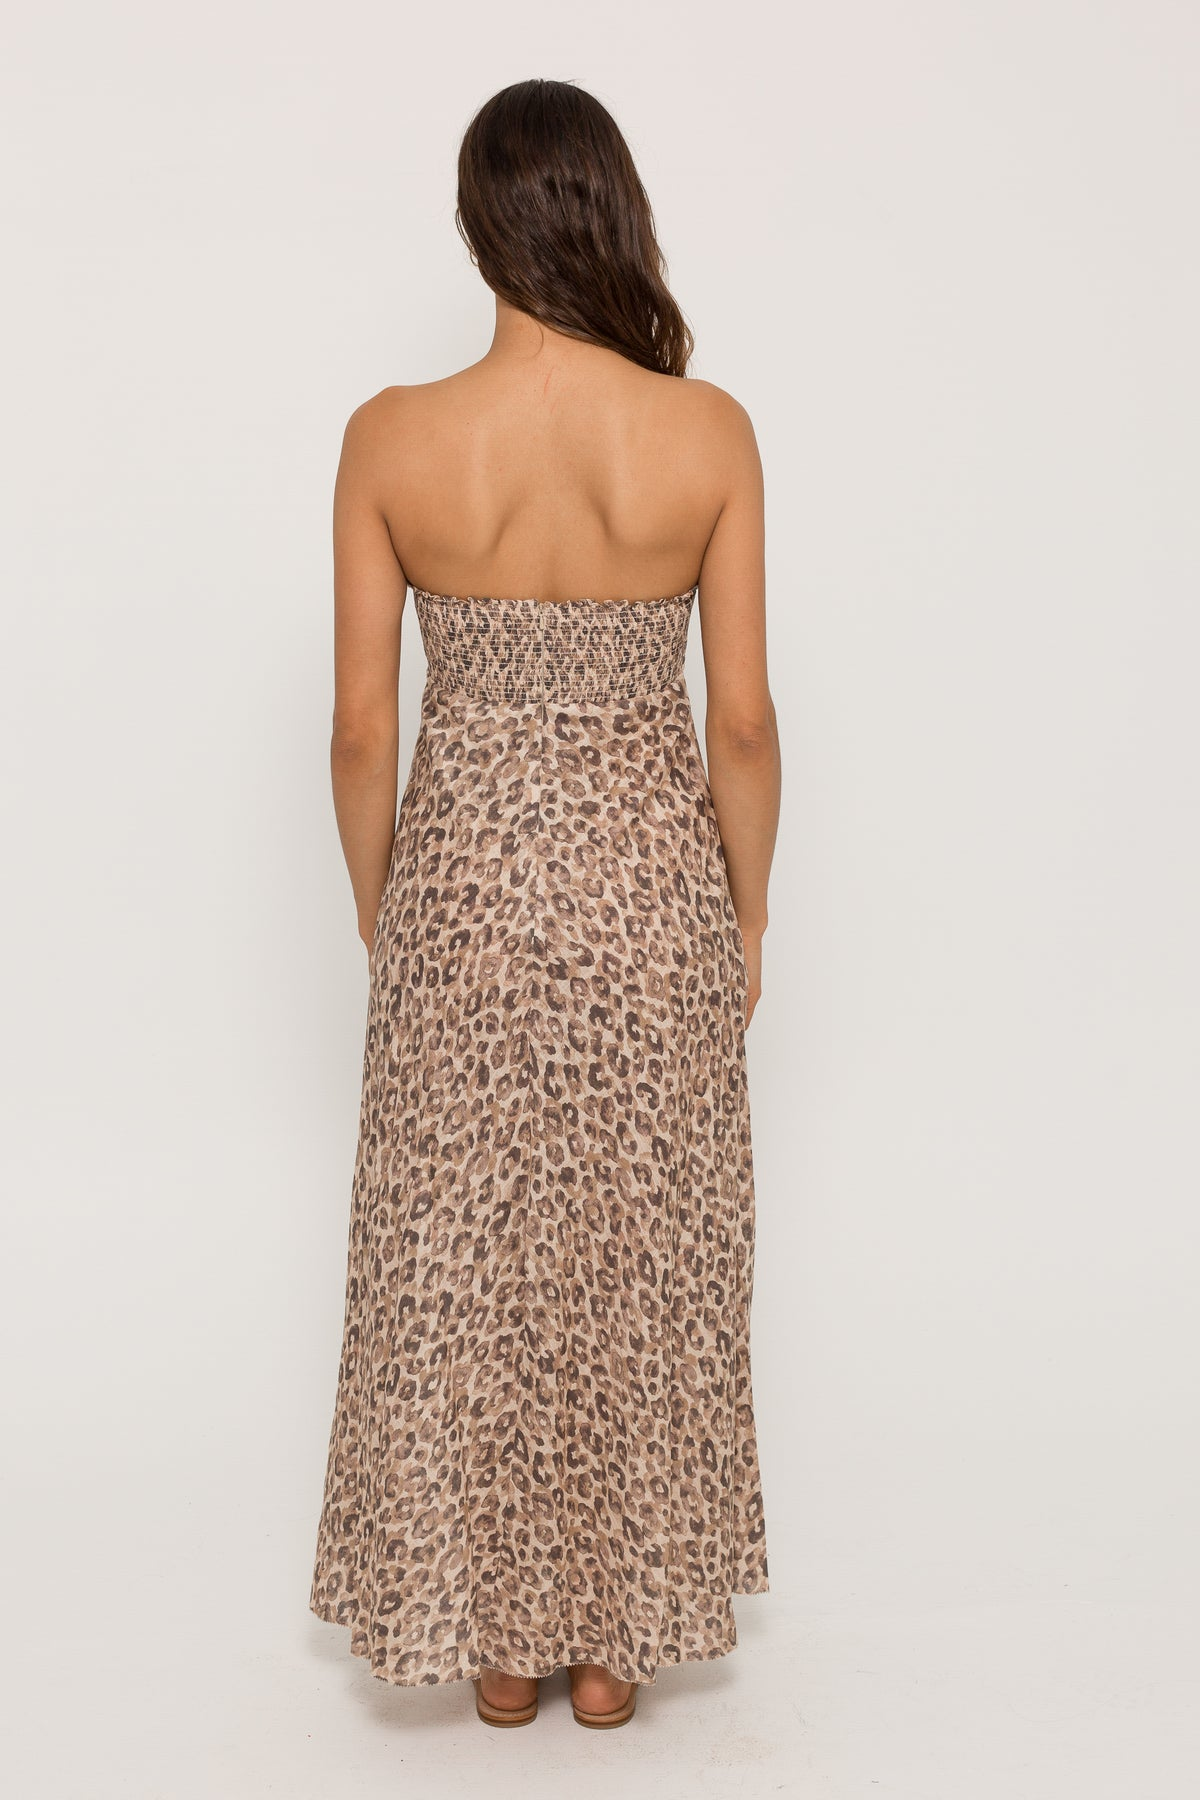 MELODY STRAPLESS DRESS